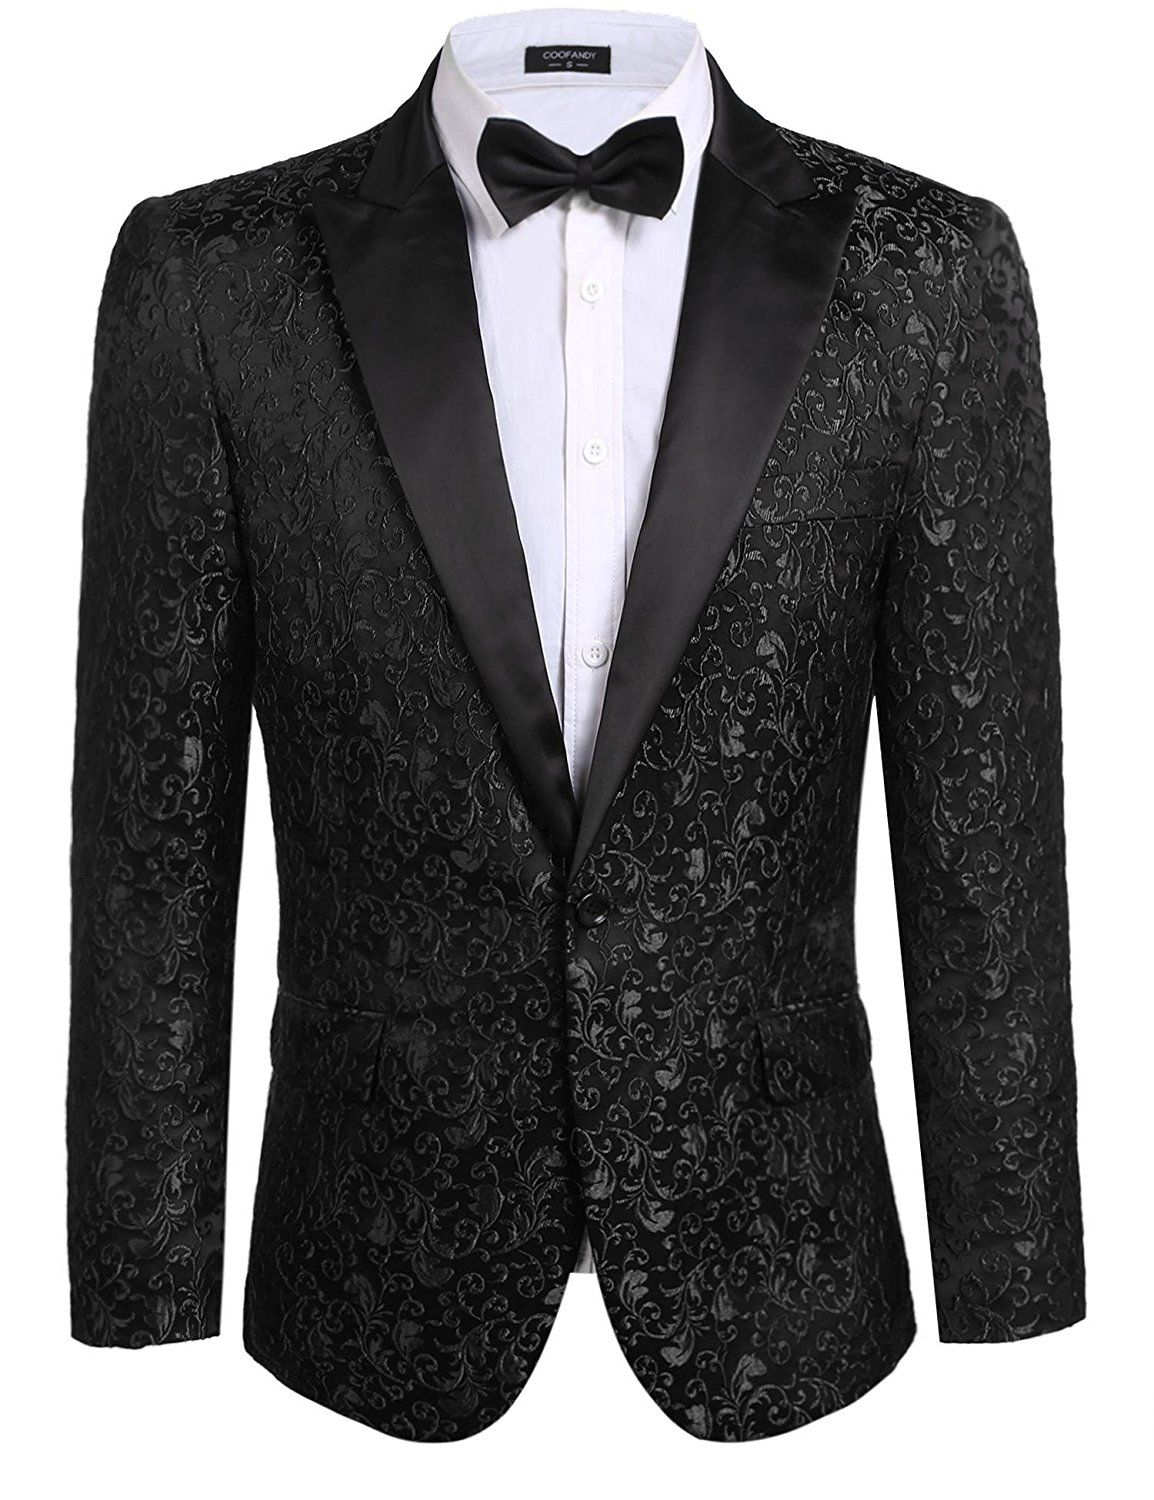 91dec374aace0 Jinidu Men s Floral Party Dress Suit Stylish Dinner Jacket Wedding Blazer  Prom Tuxedo at Amazon Men s Clothing store  Price   65.99 -  69.99